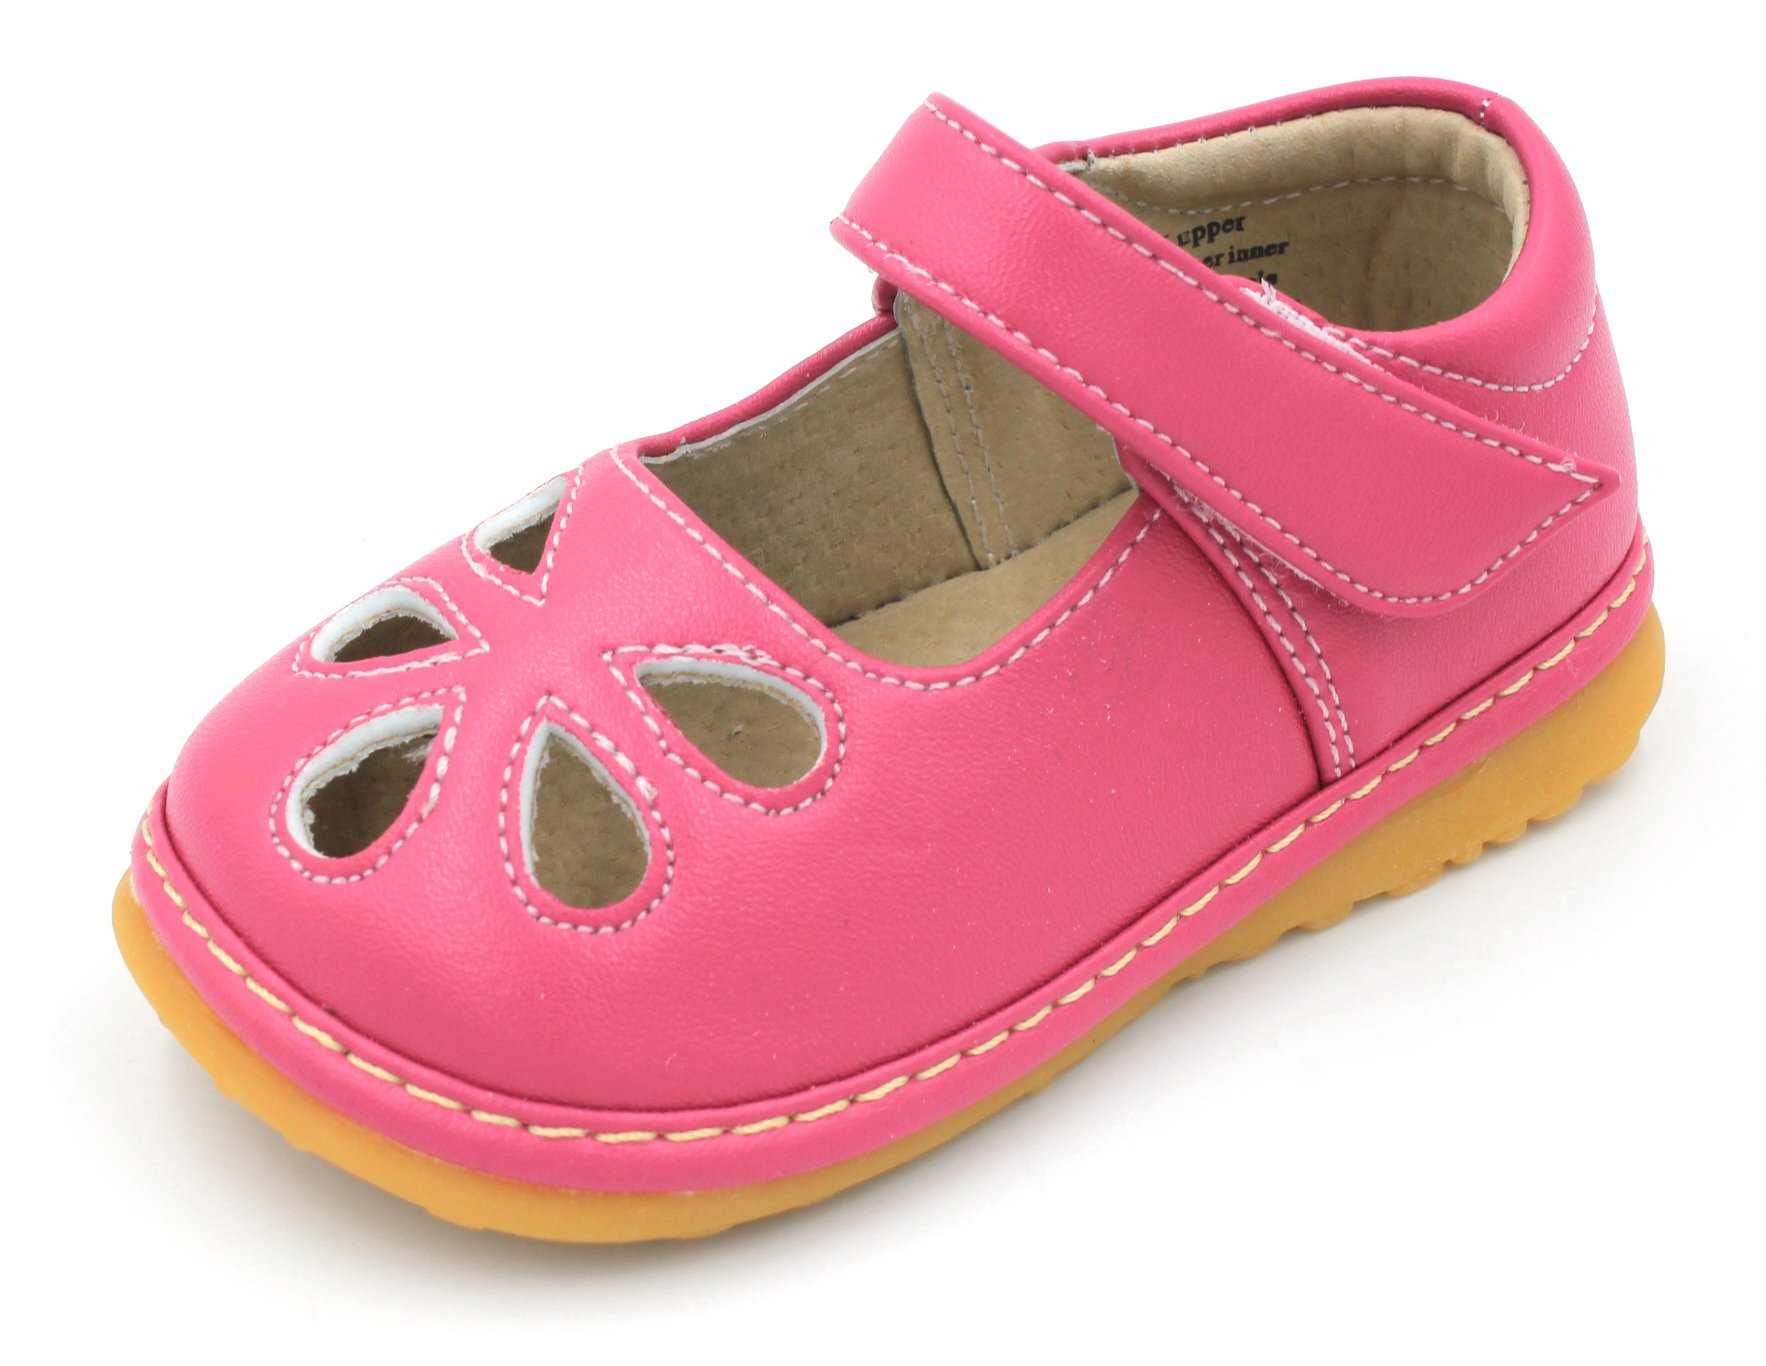 Ideal Toddler Walking Shoes with Removable Squeaker and Adjustable Strap Flexible Sole Baby Shoes Little Maes Boutique Mary Jane Sparkle Squeaky Shoes for Toddler Girls